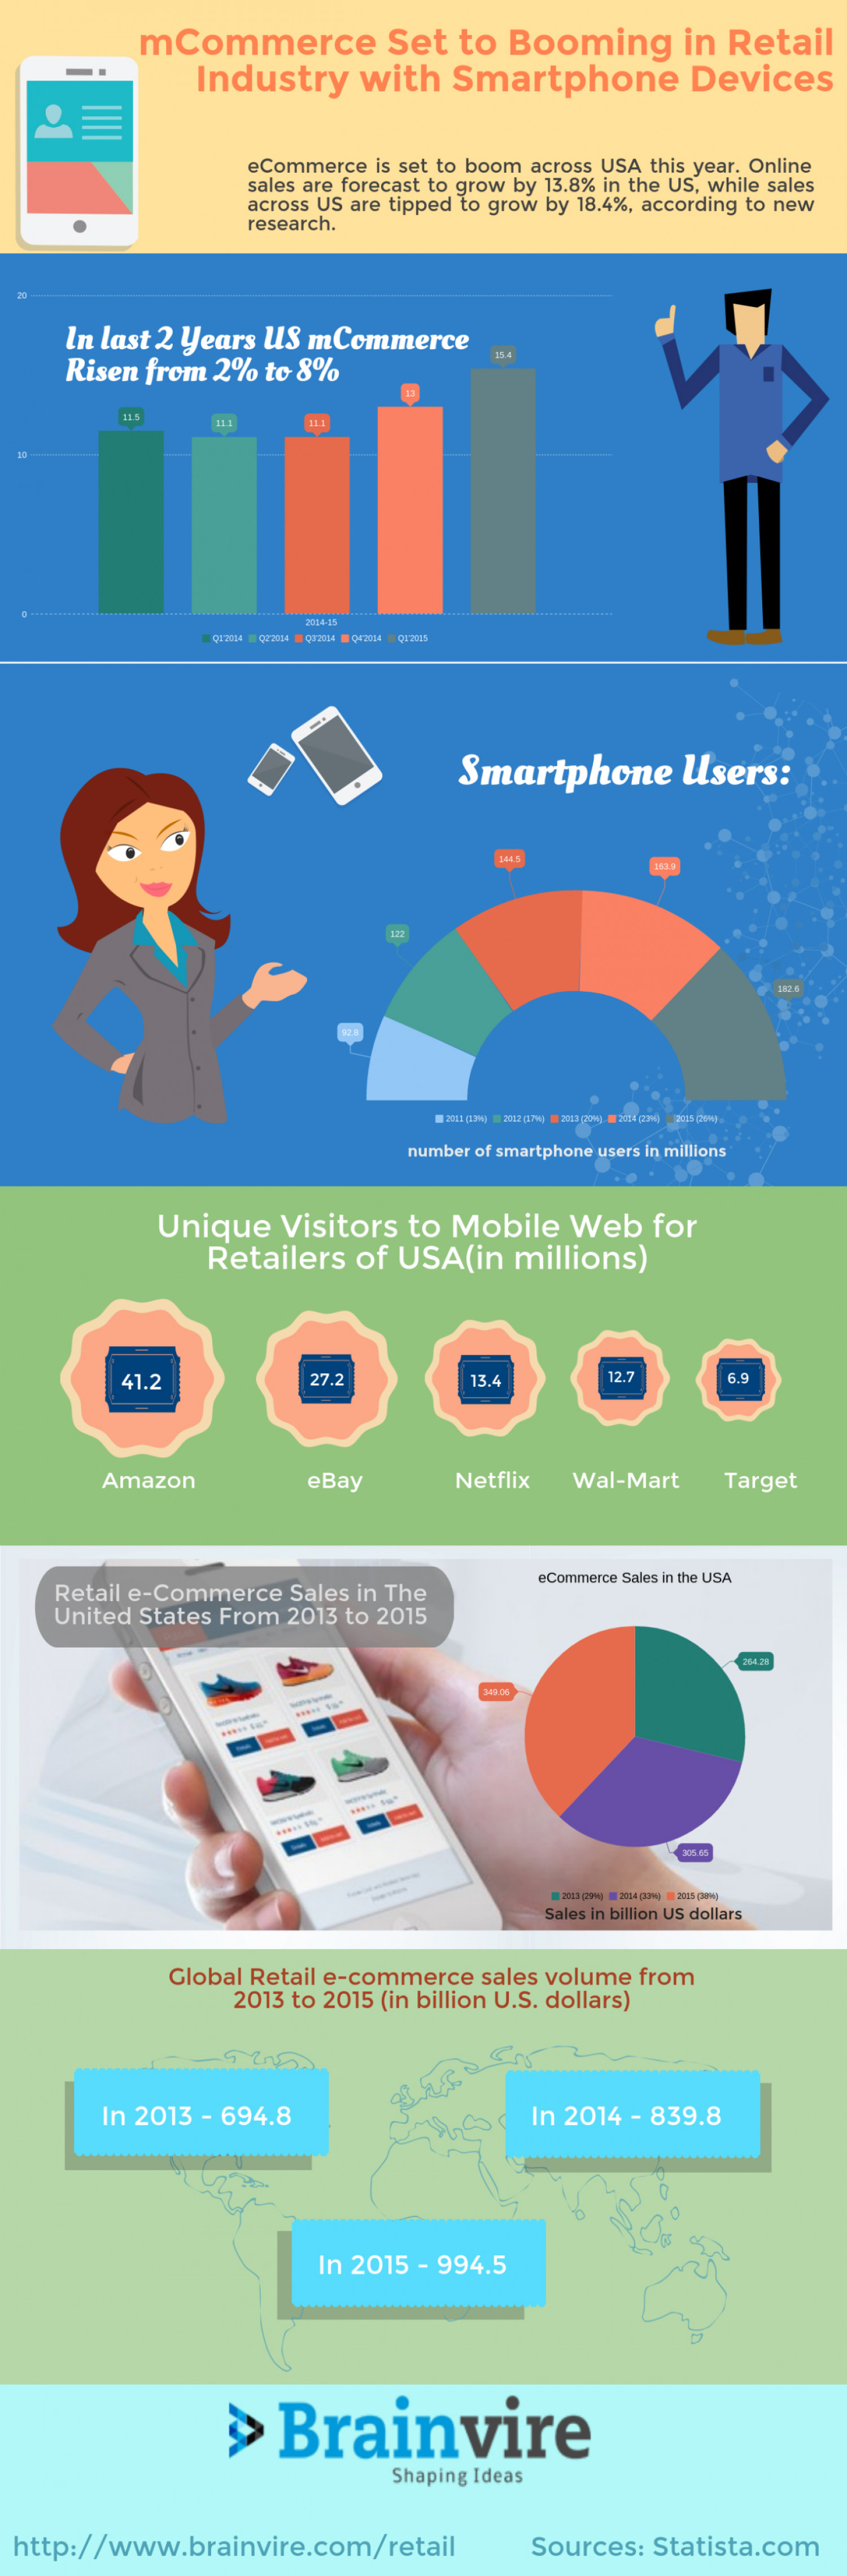 mCommerce Set to Booming in Retail Industry with Smartphone Devices Infographic